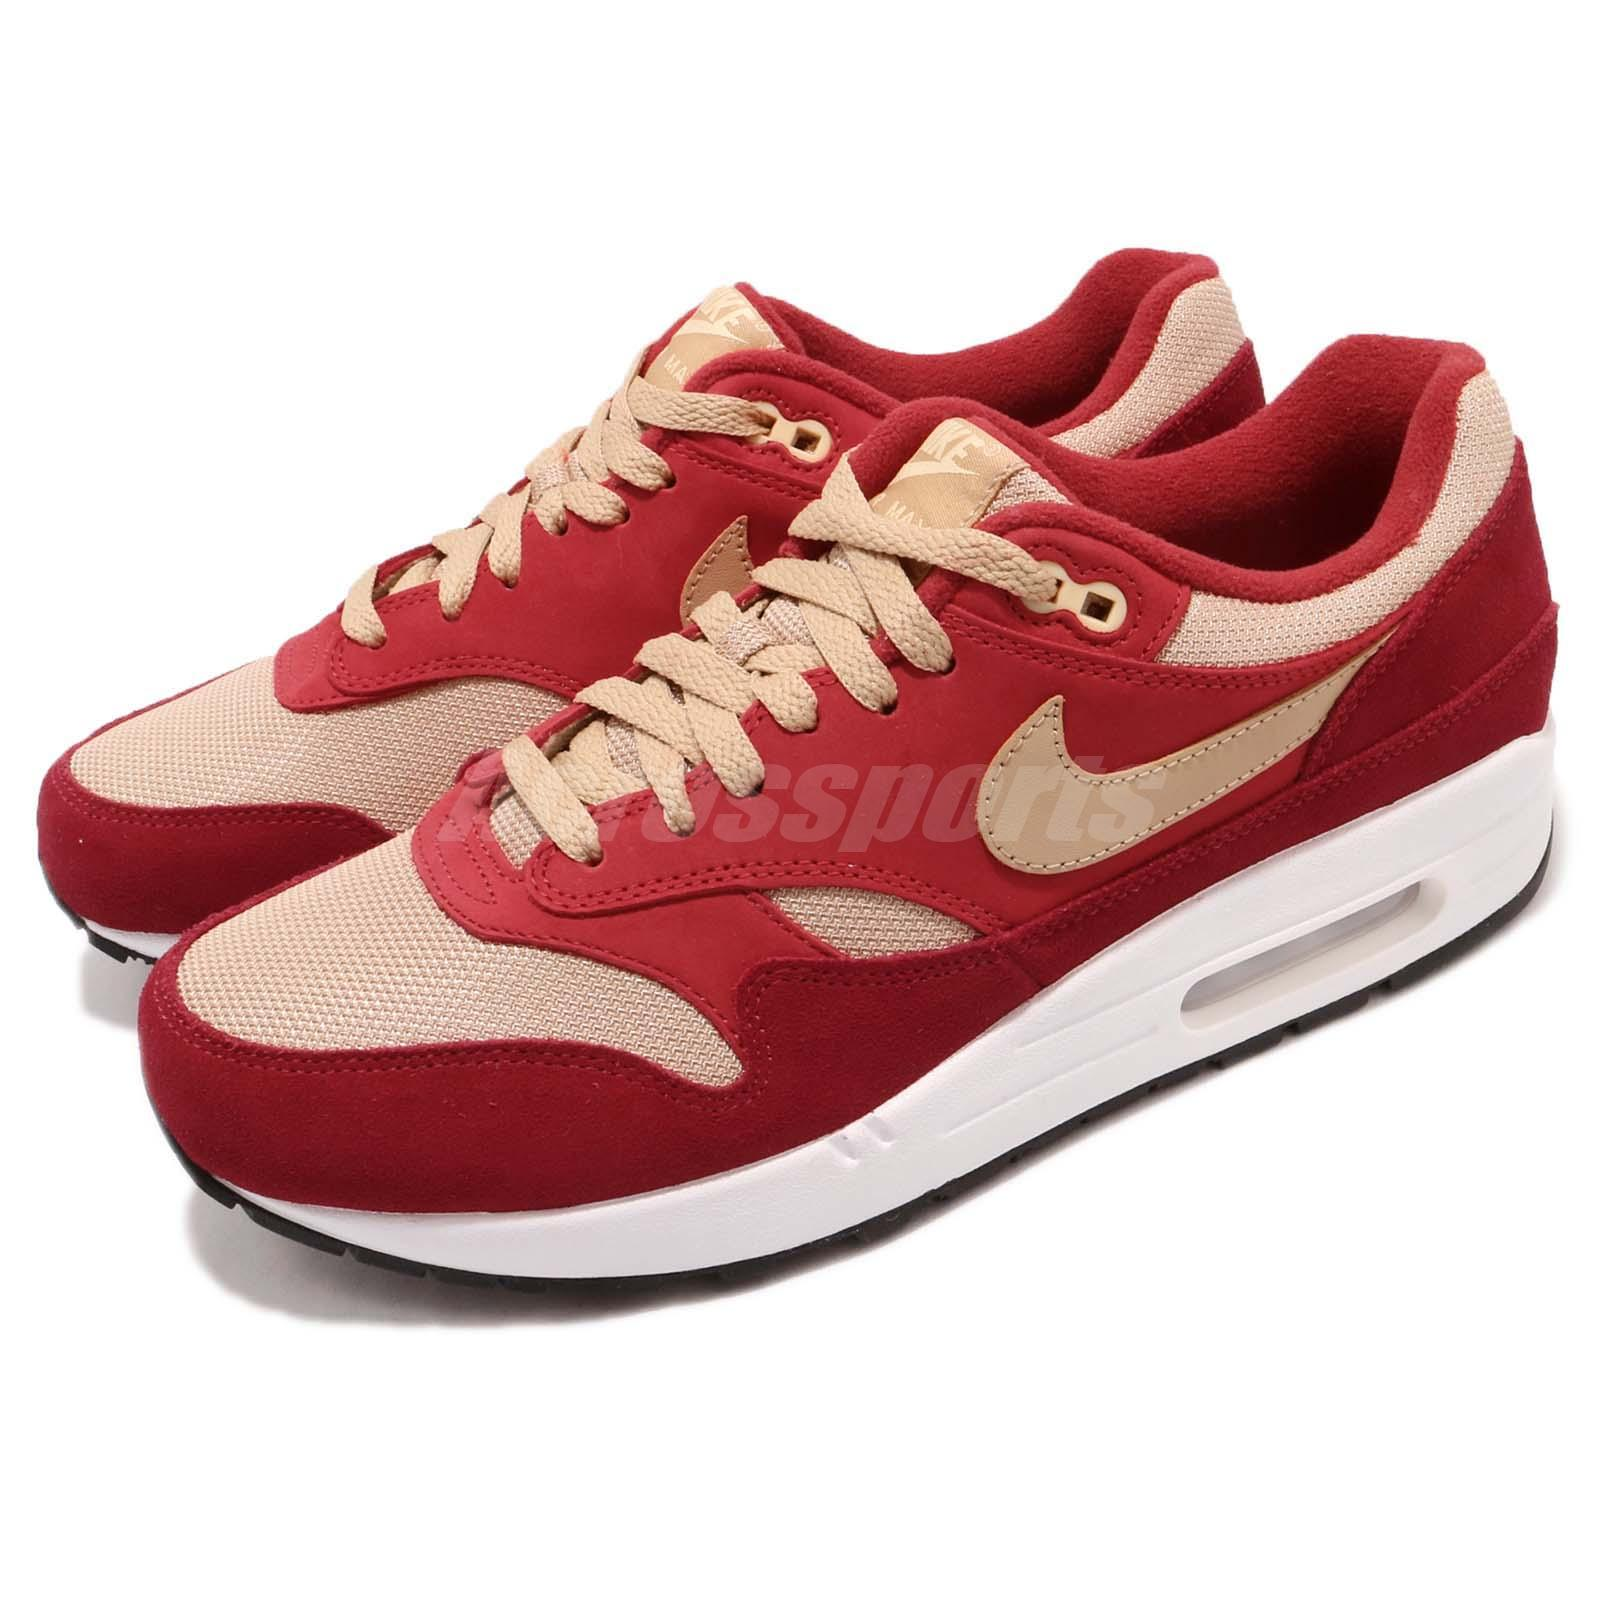 best loved 23678 8f7b7 Details about atmos X Nike Air Max 1 Premium Retro Red Curry Pack Men  Running Shoes 908366-600